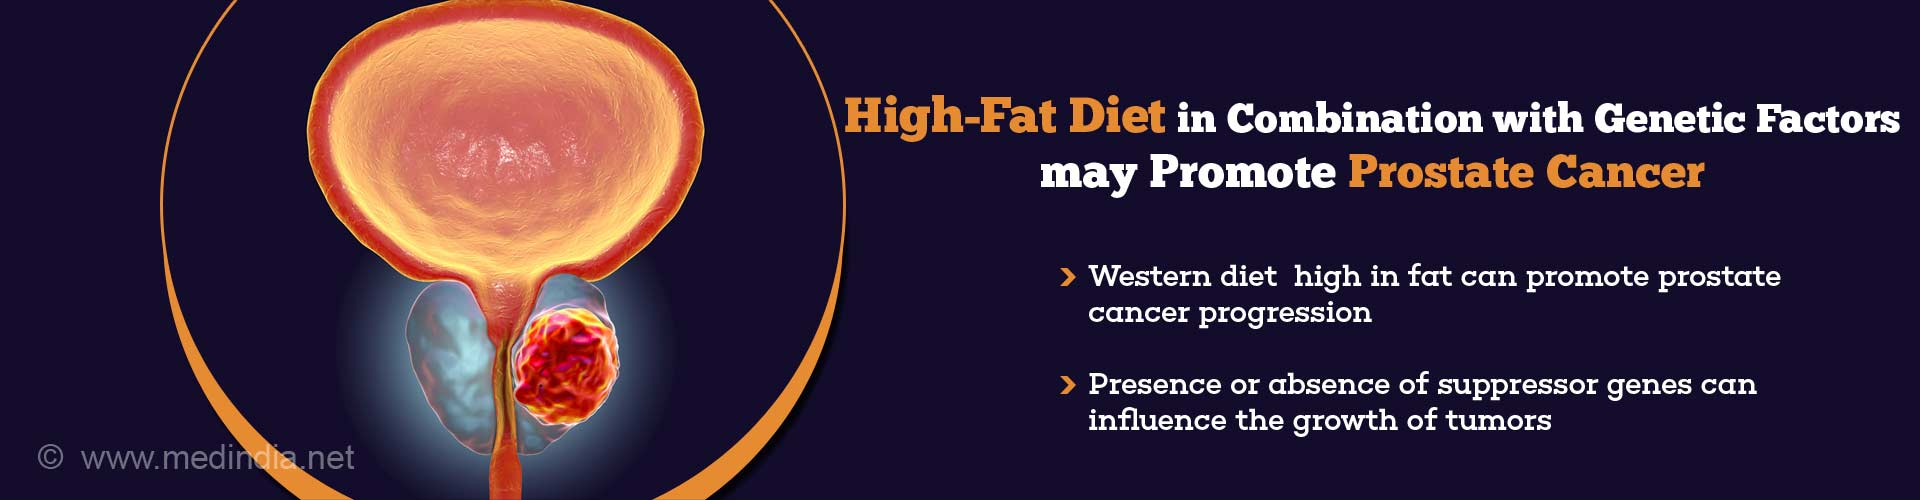 high-fat diet combination with genetic factors may promote prostate cancer